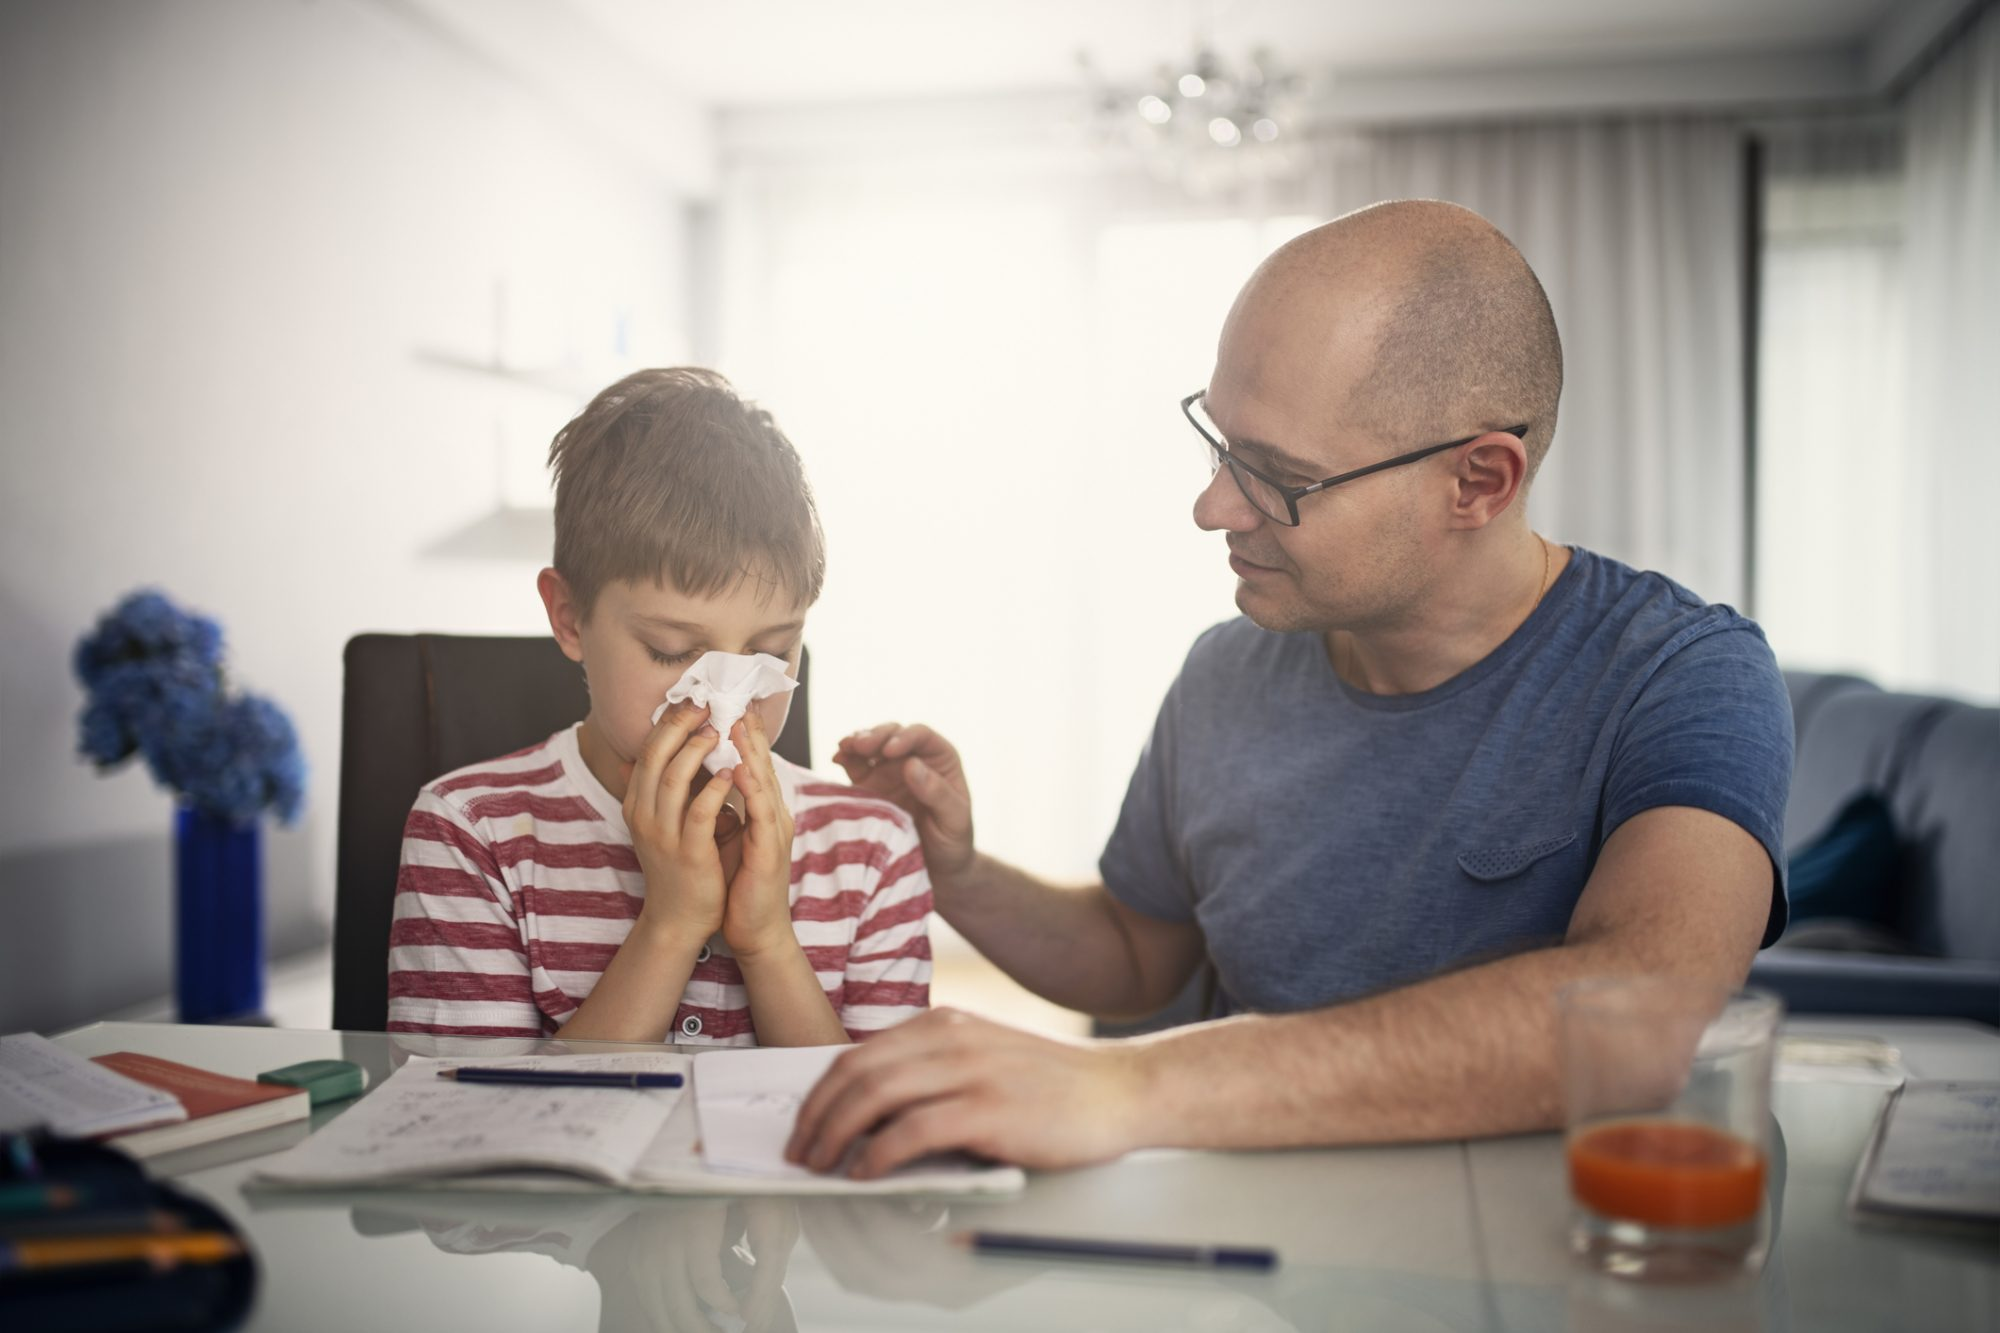 son sneezing in tissue and father sitting next to him